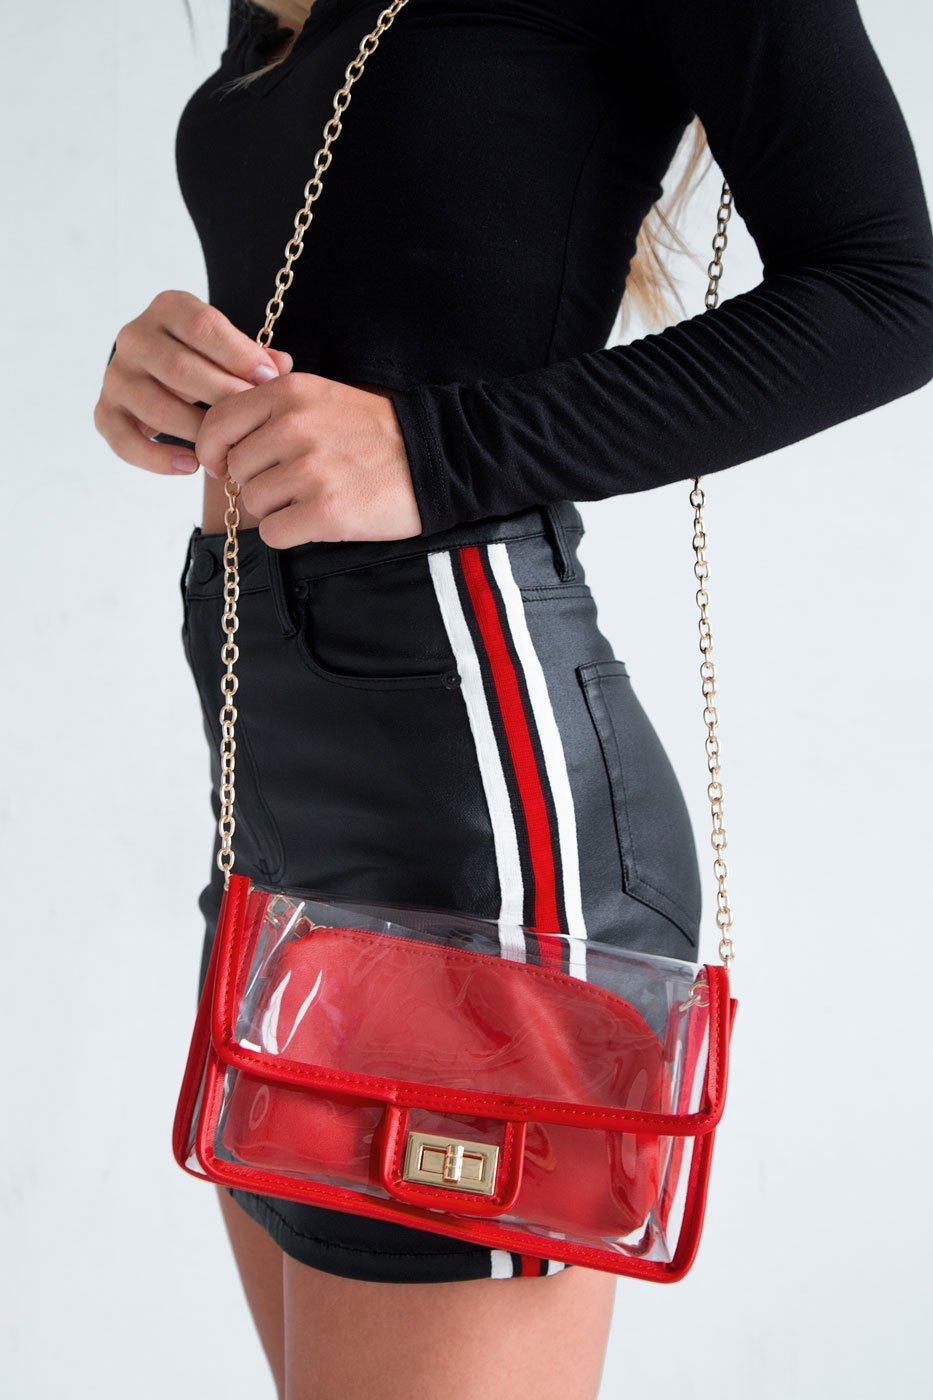 Accessories - See Thru Bag - Red